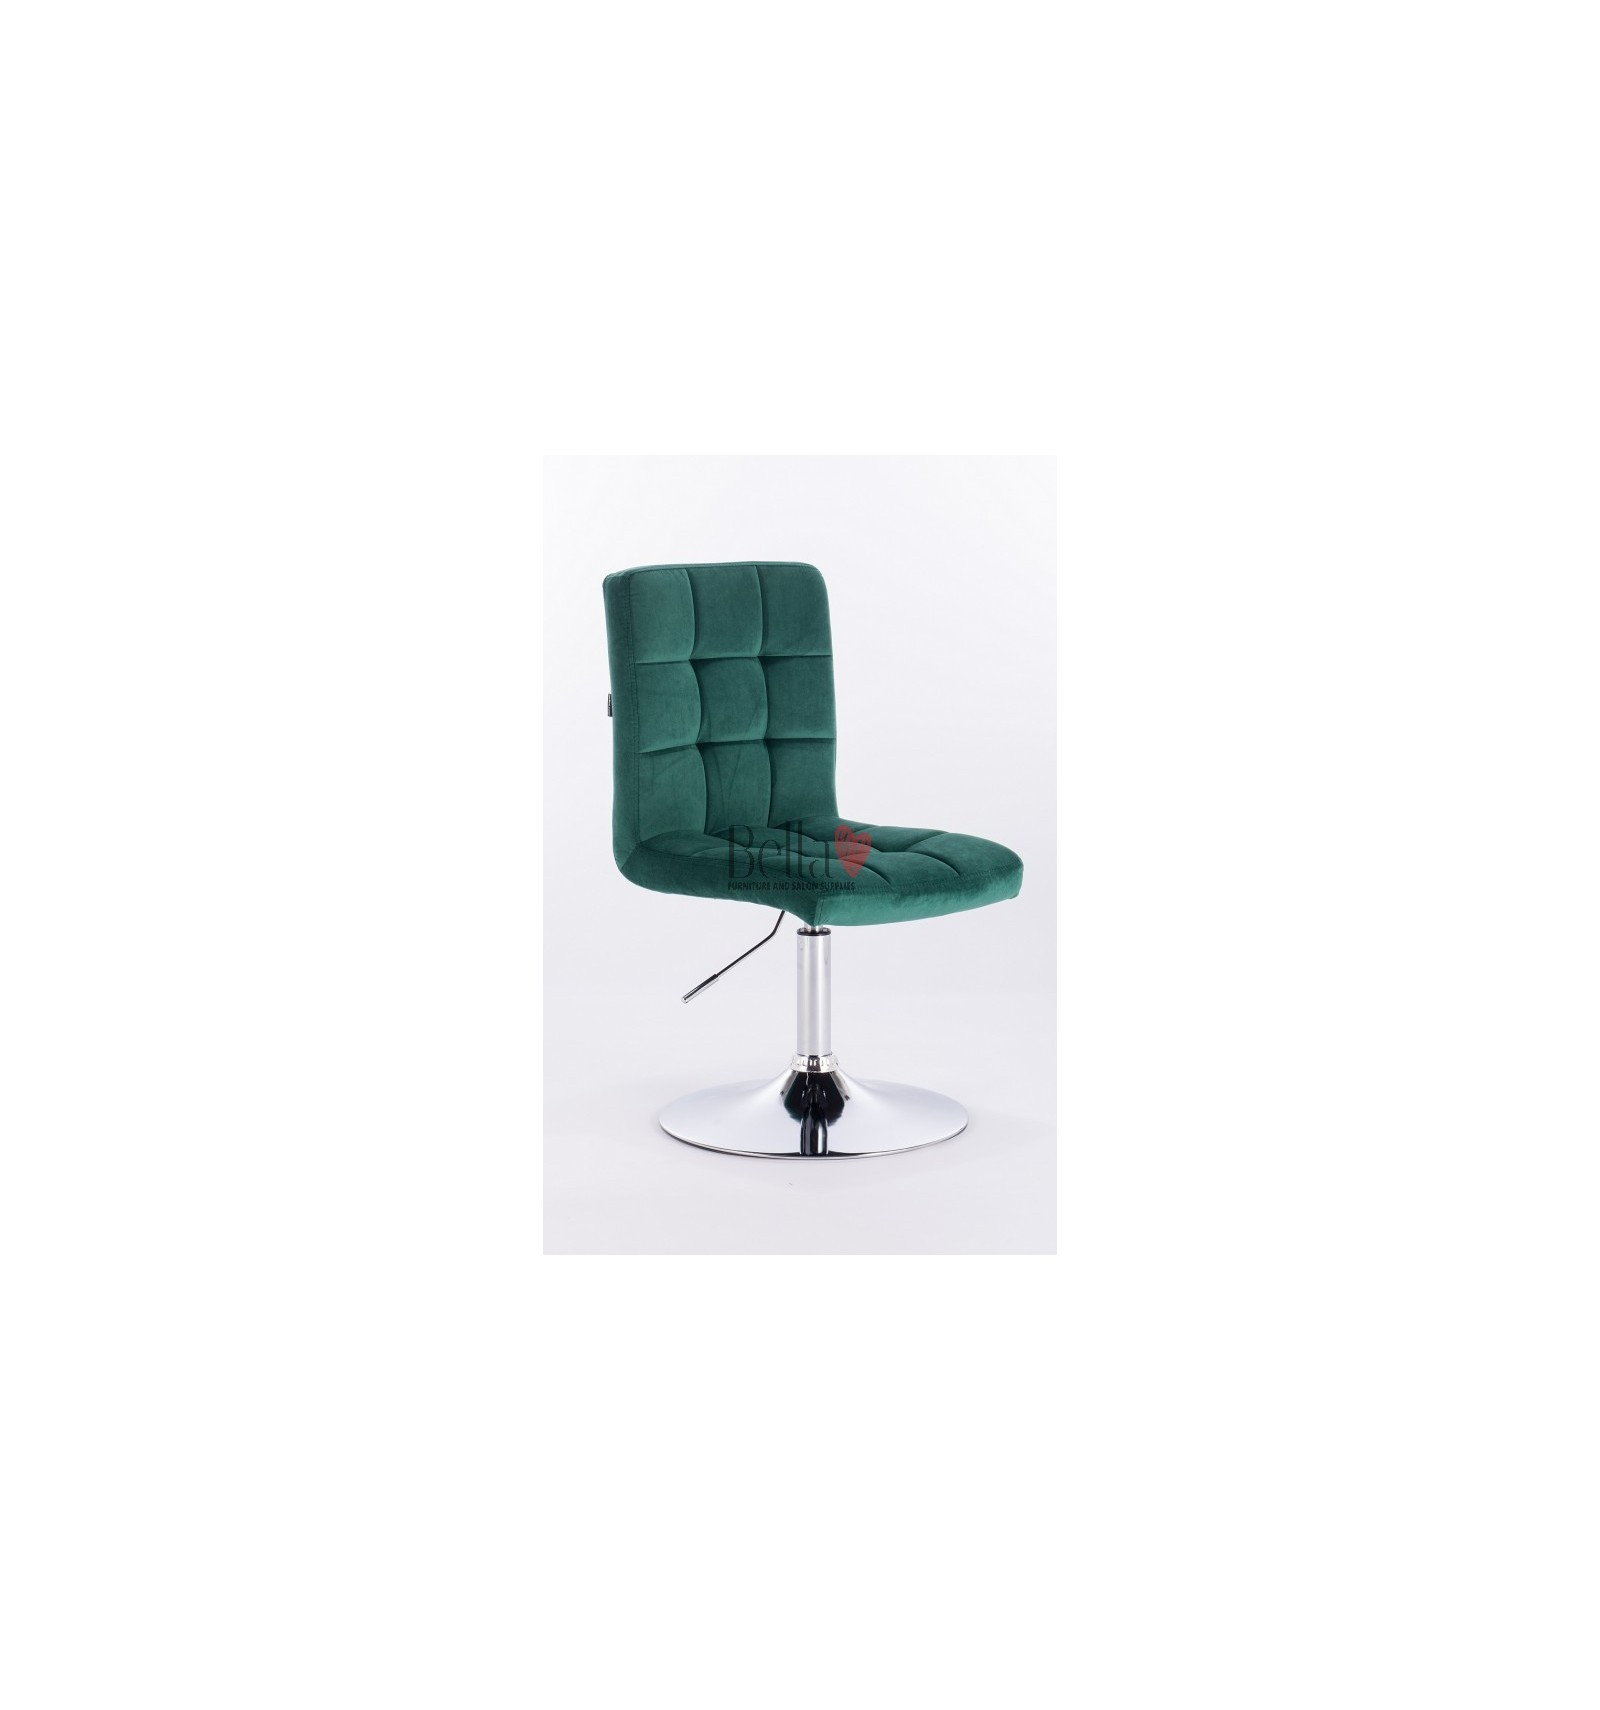 Salon Turquoise Elegant Salon Chairs With Chrome Base Perfect For Beauty